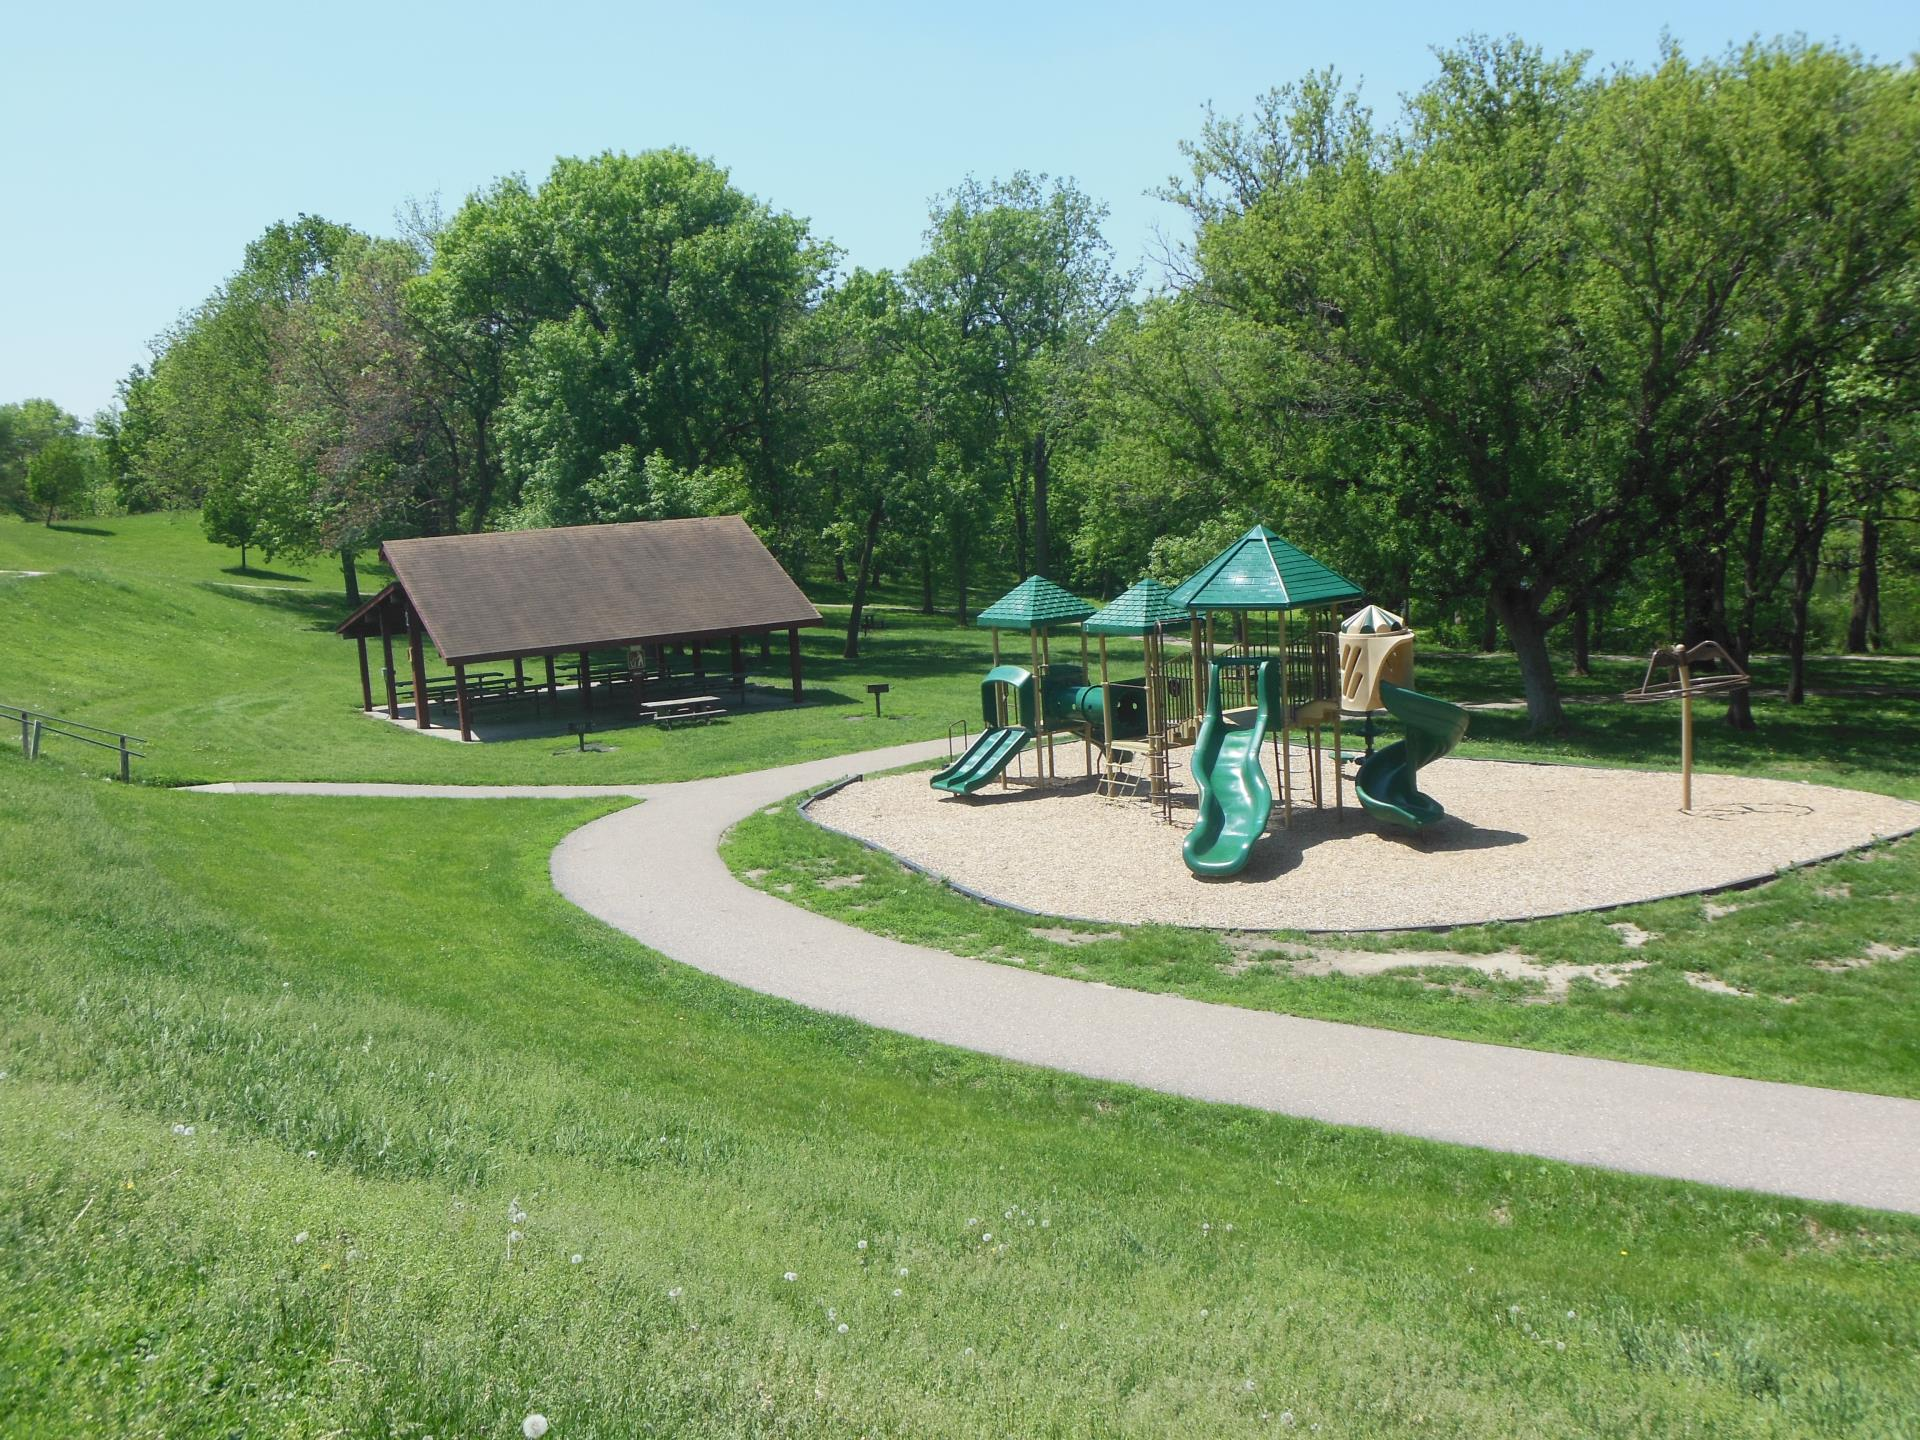 Bacon Creek 2 & play equipment